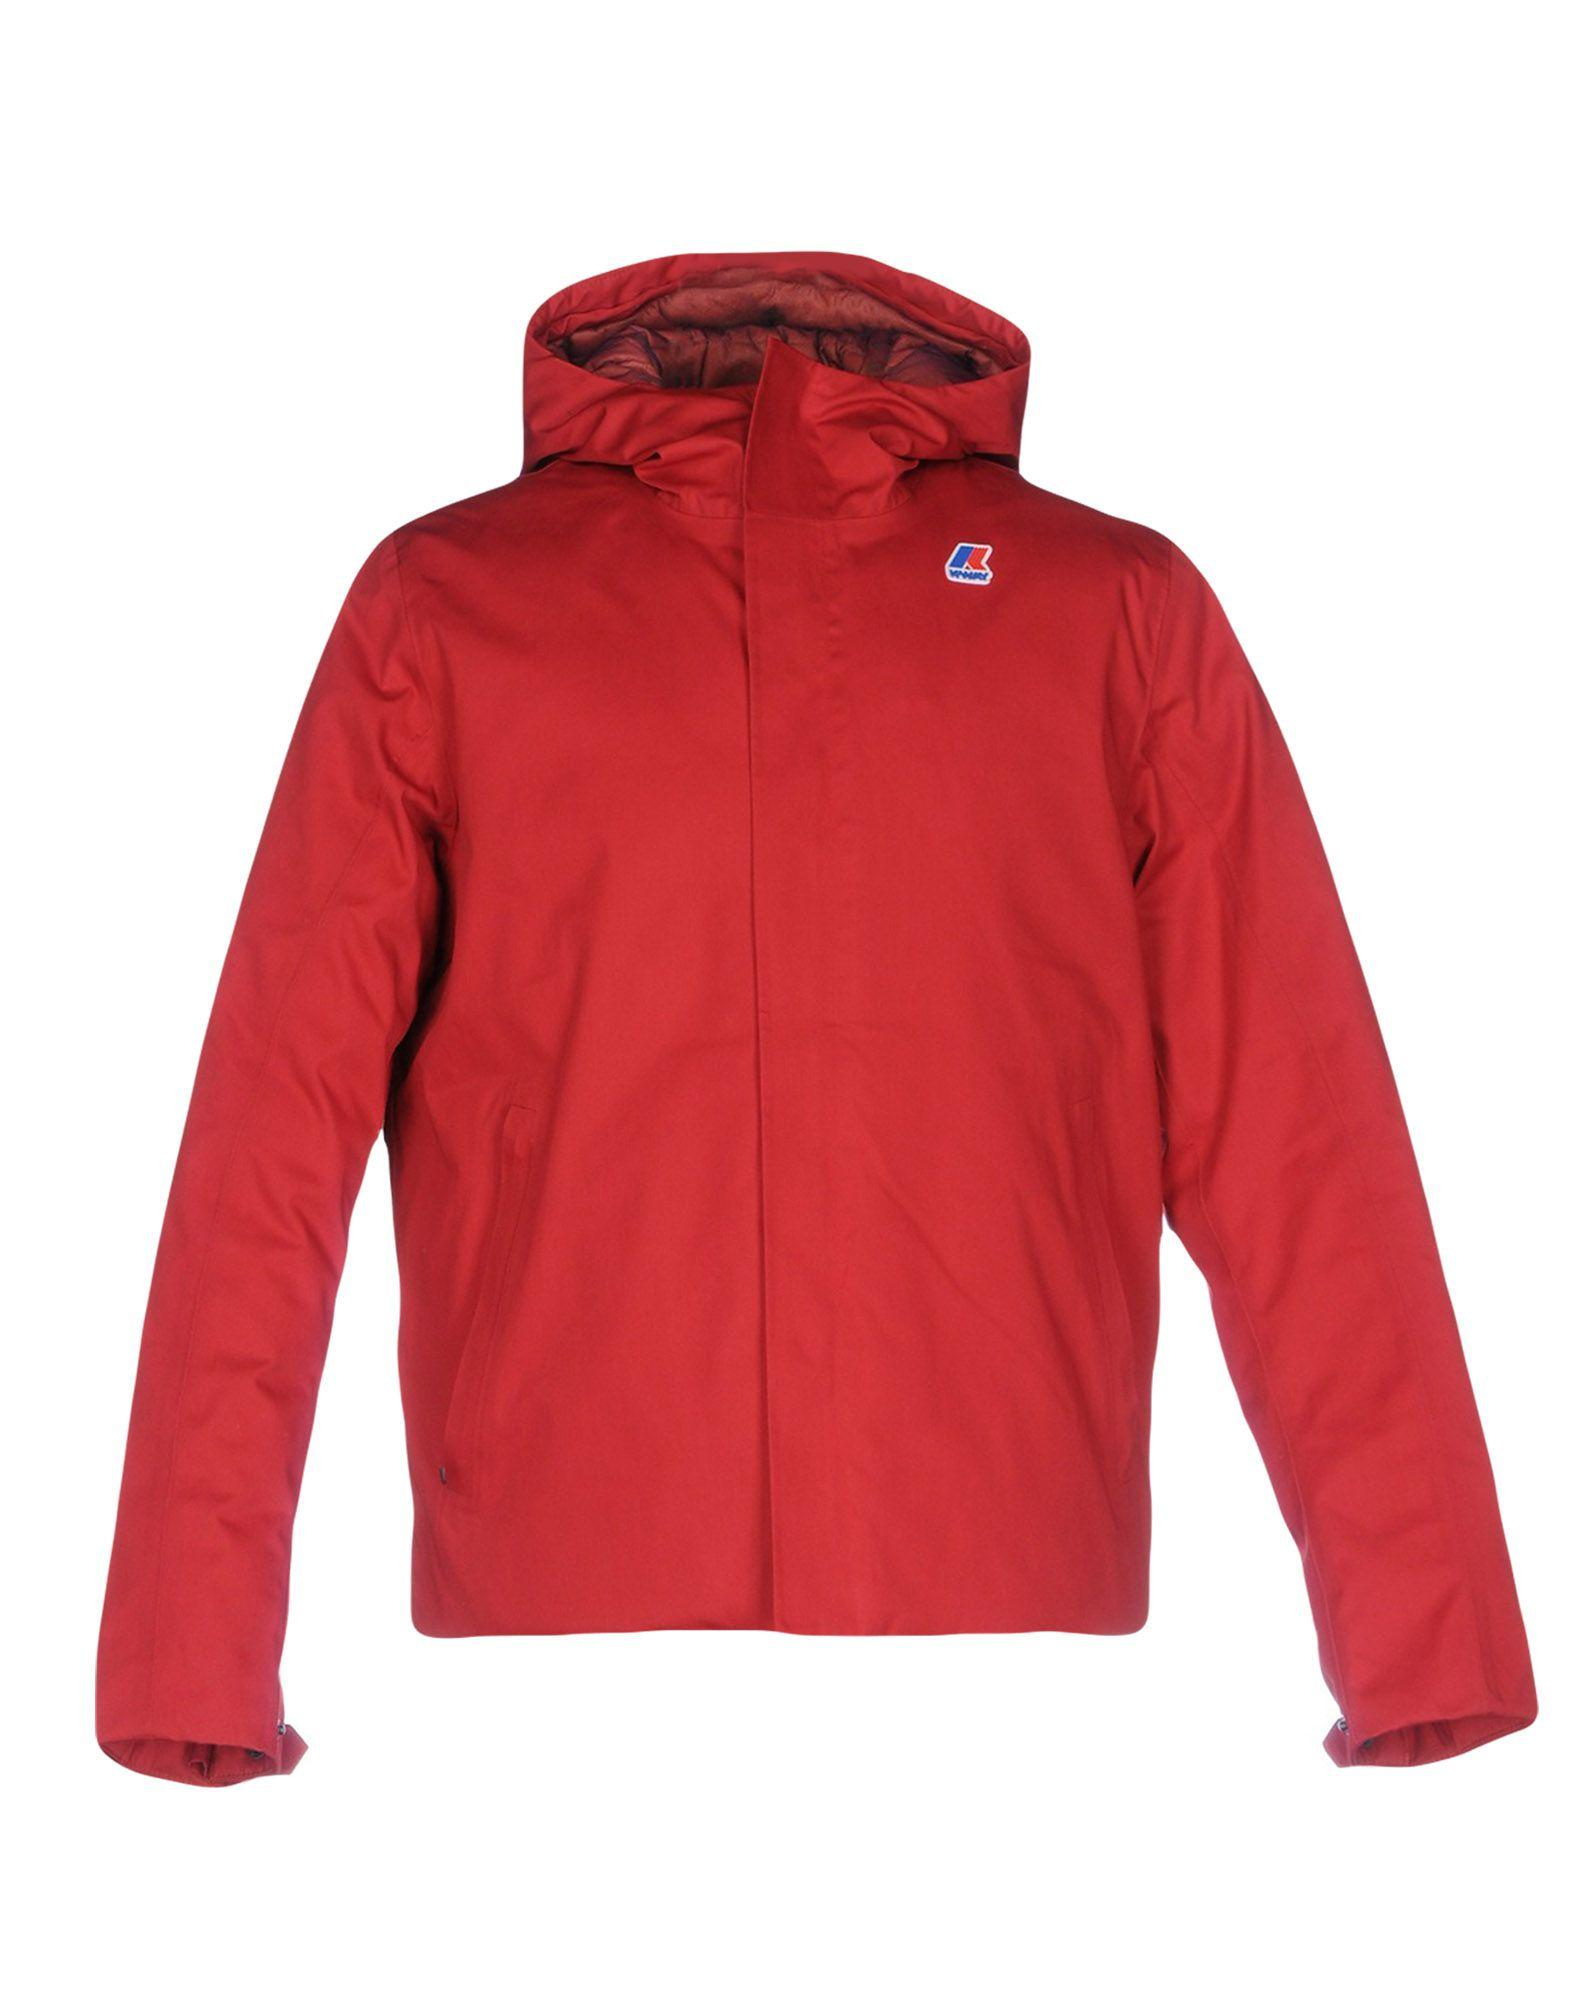 K-way Down Jackets In Red